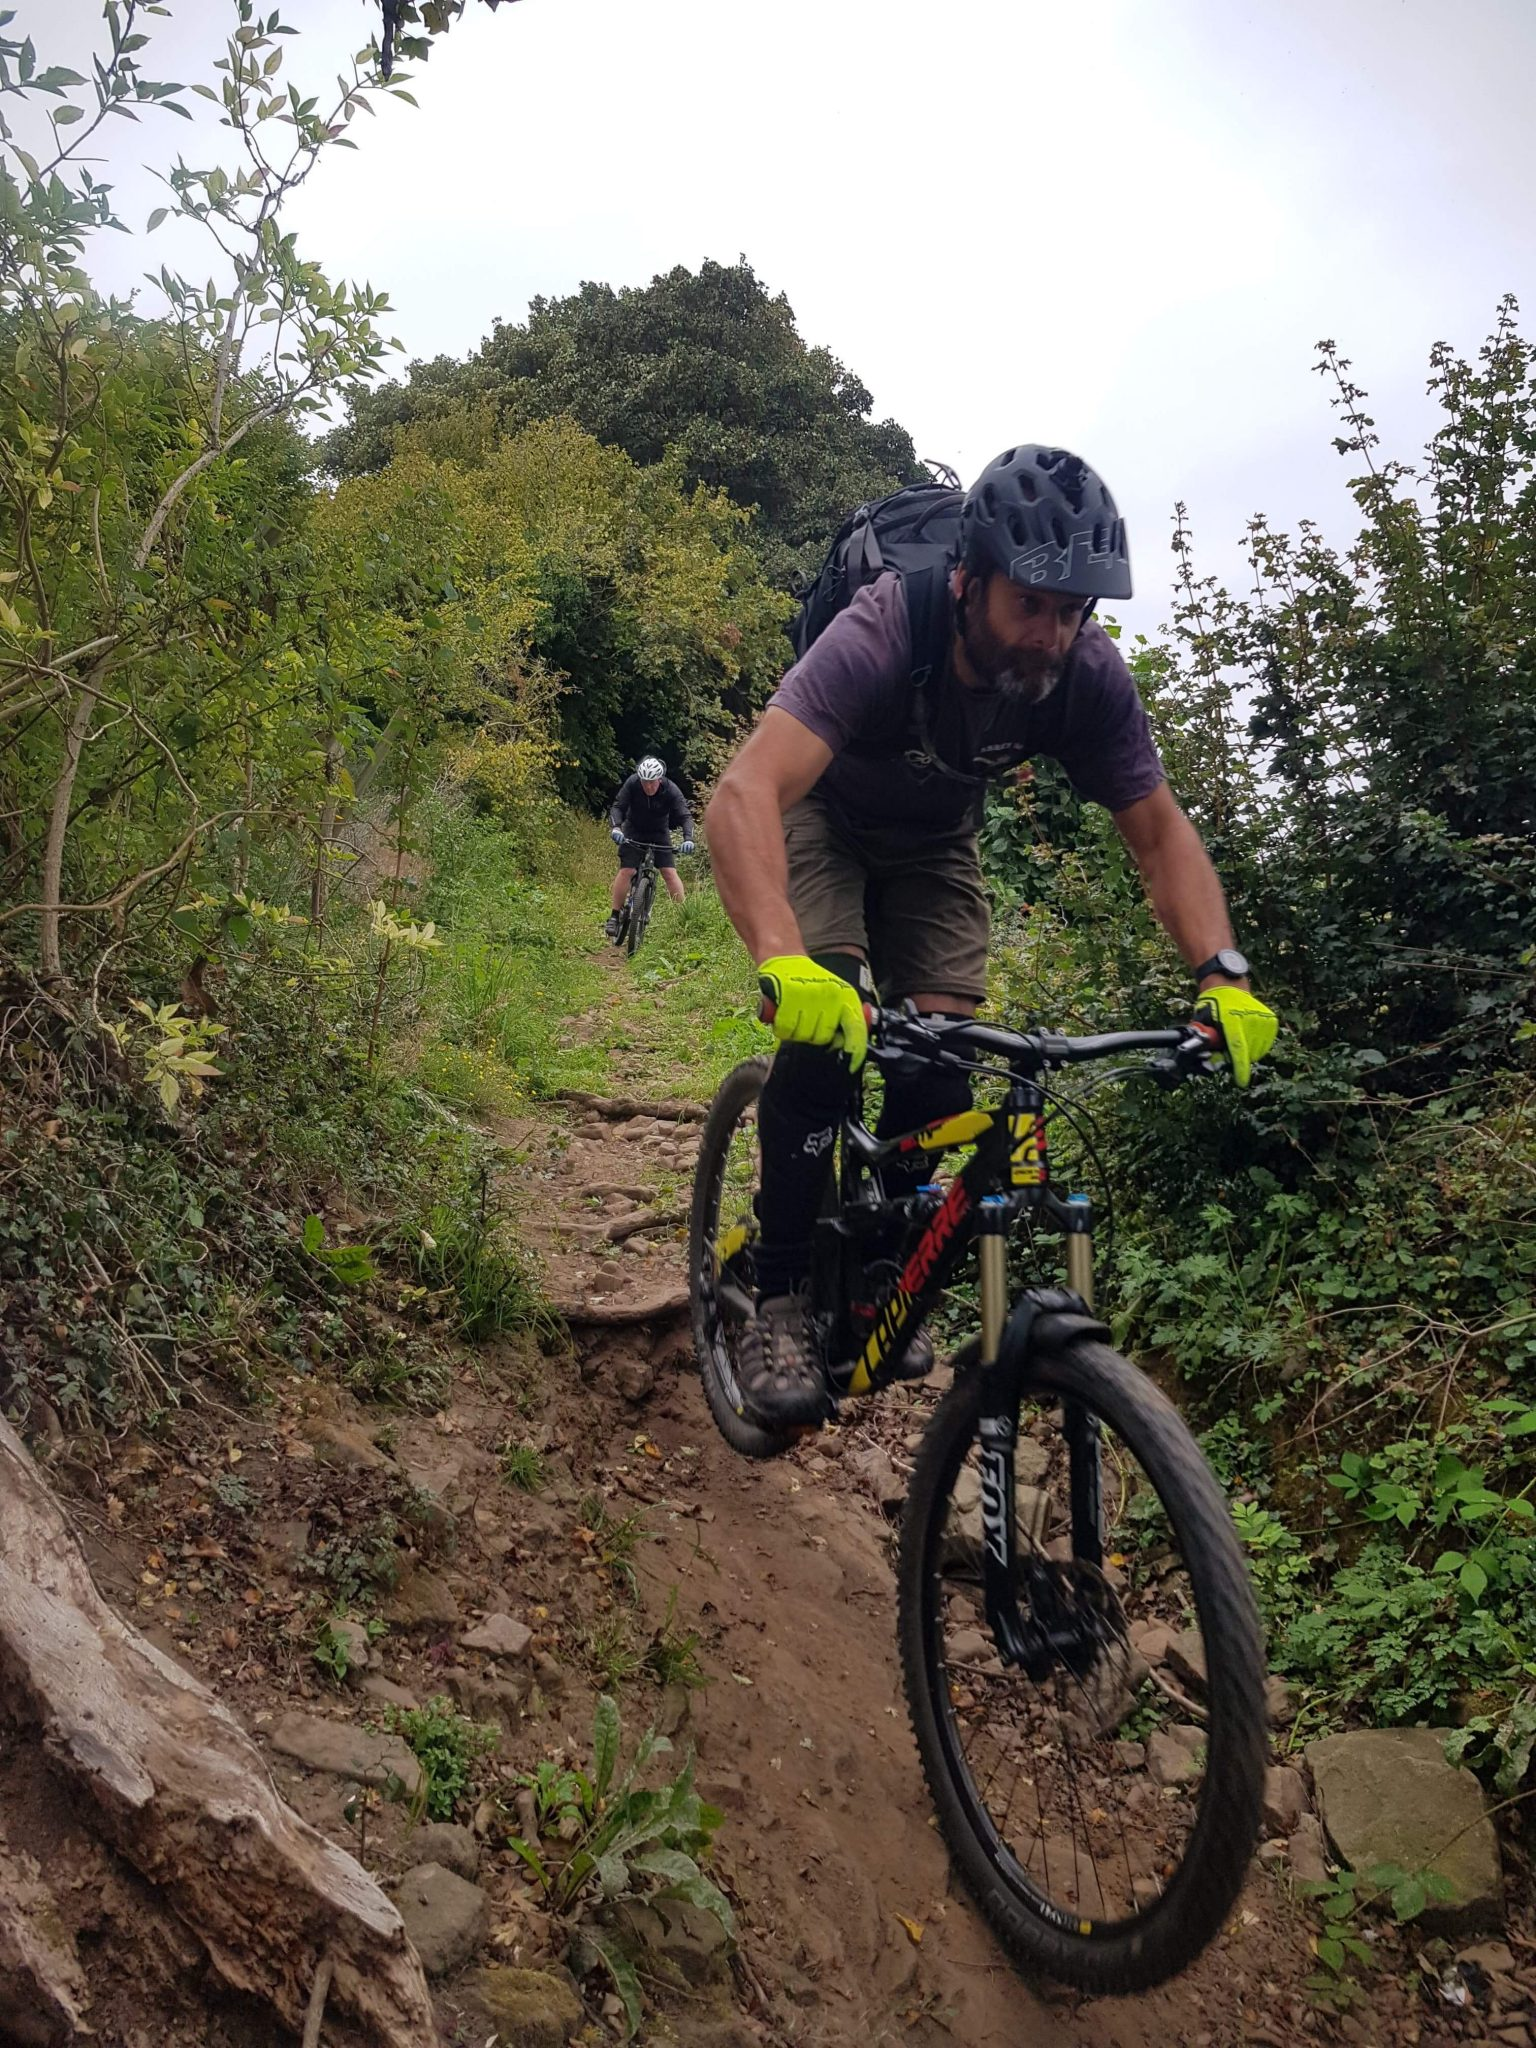 Mountain biking Guided Ride, South Wales